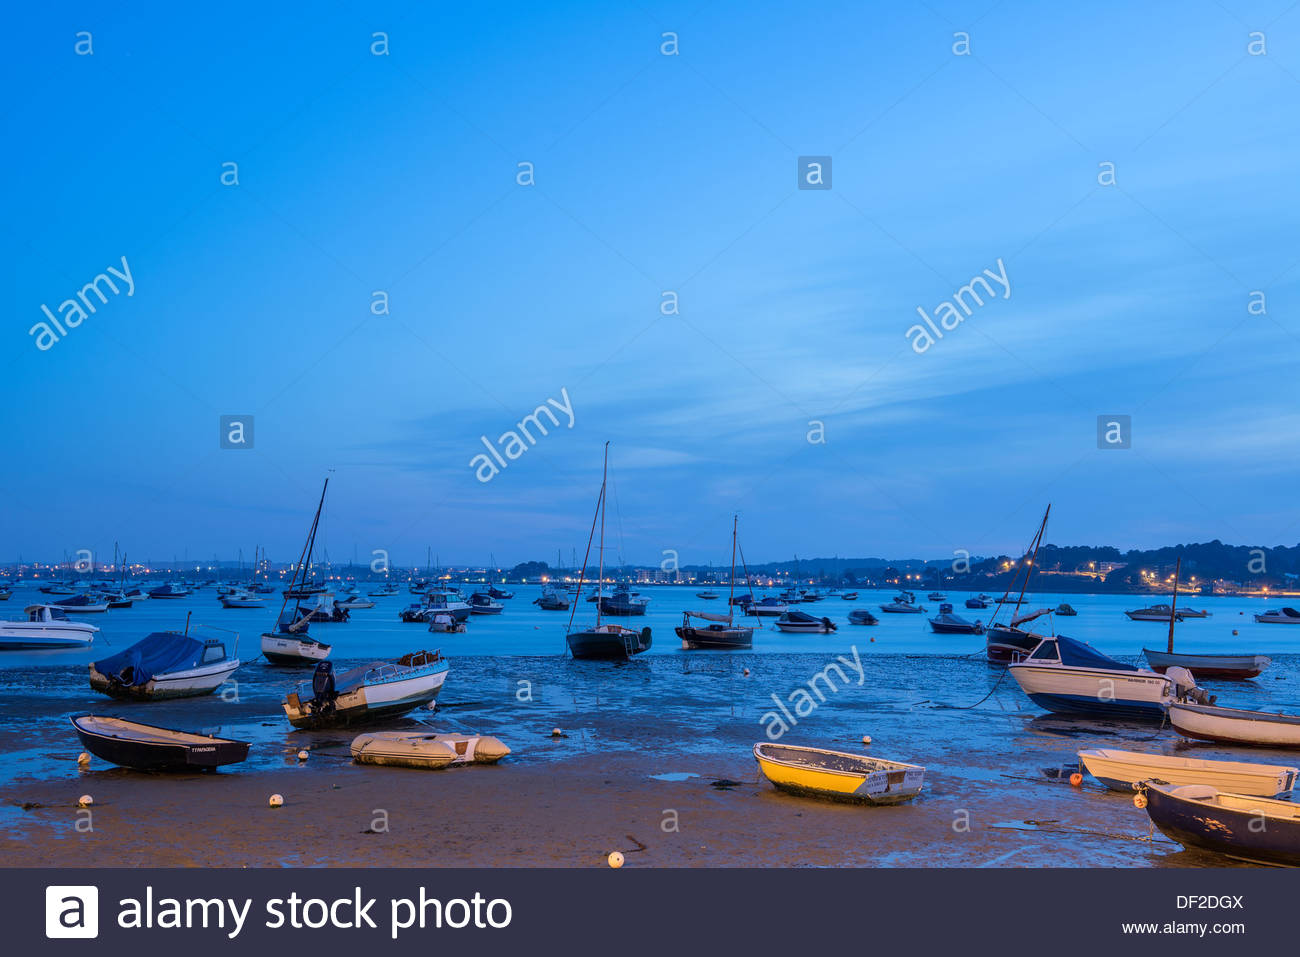 Boats in Sandbanks, Poole, Dorset, UK during the blue hour. - Stock Image